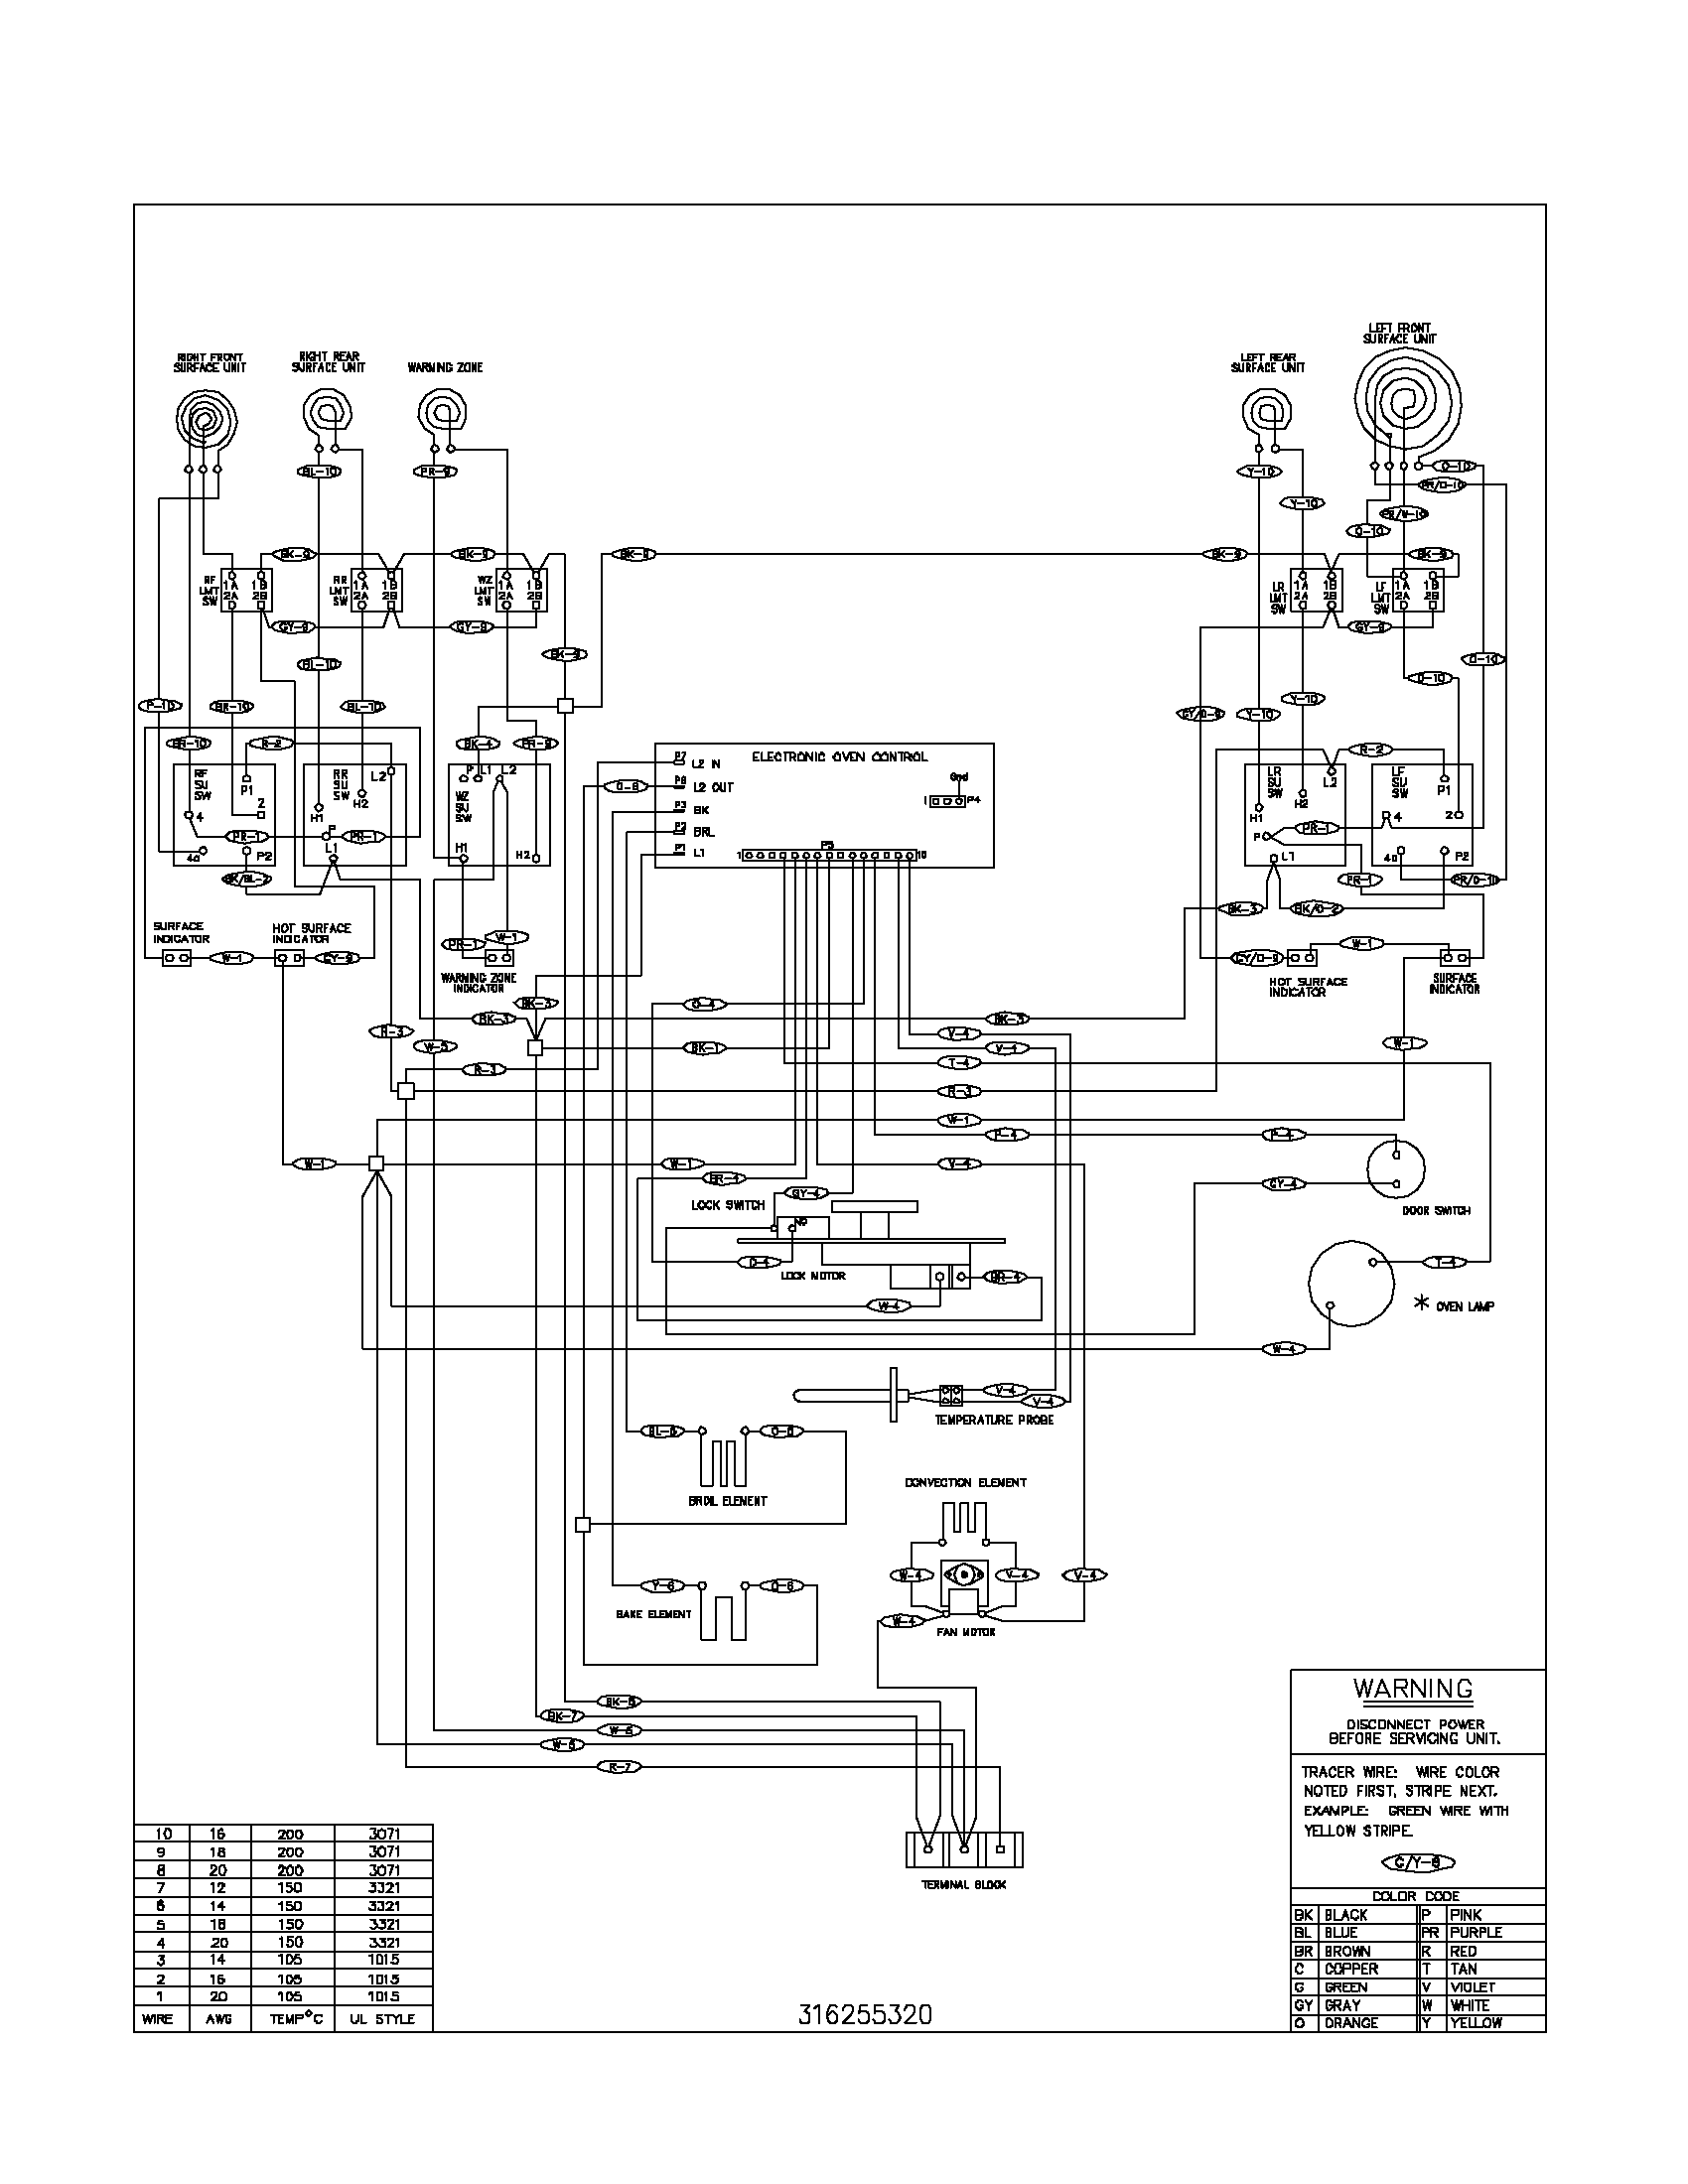 wiring diagram parts whirlpool oven wiring diagram whirlpool refrigerator diagram Whirlpool Dryer Schematics and Diagrams at mr168.co